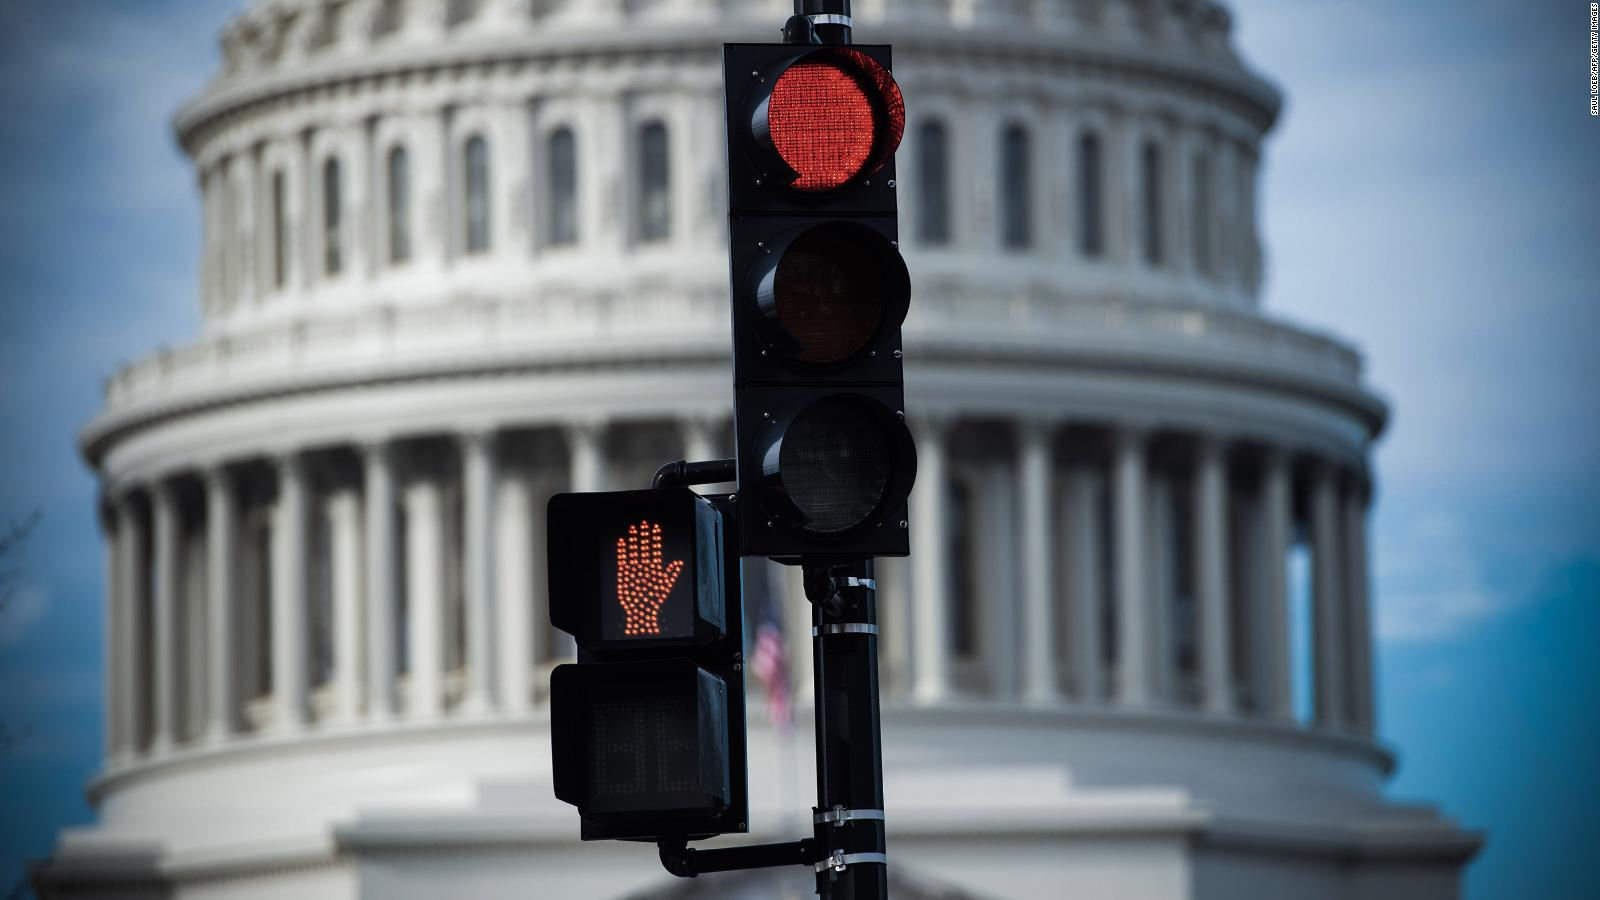 Economy continues to take hits during shutdown